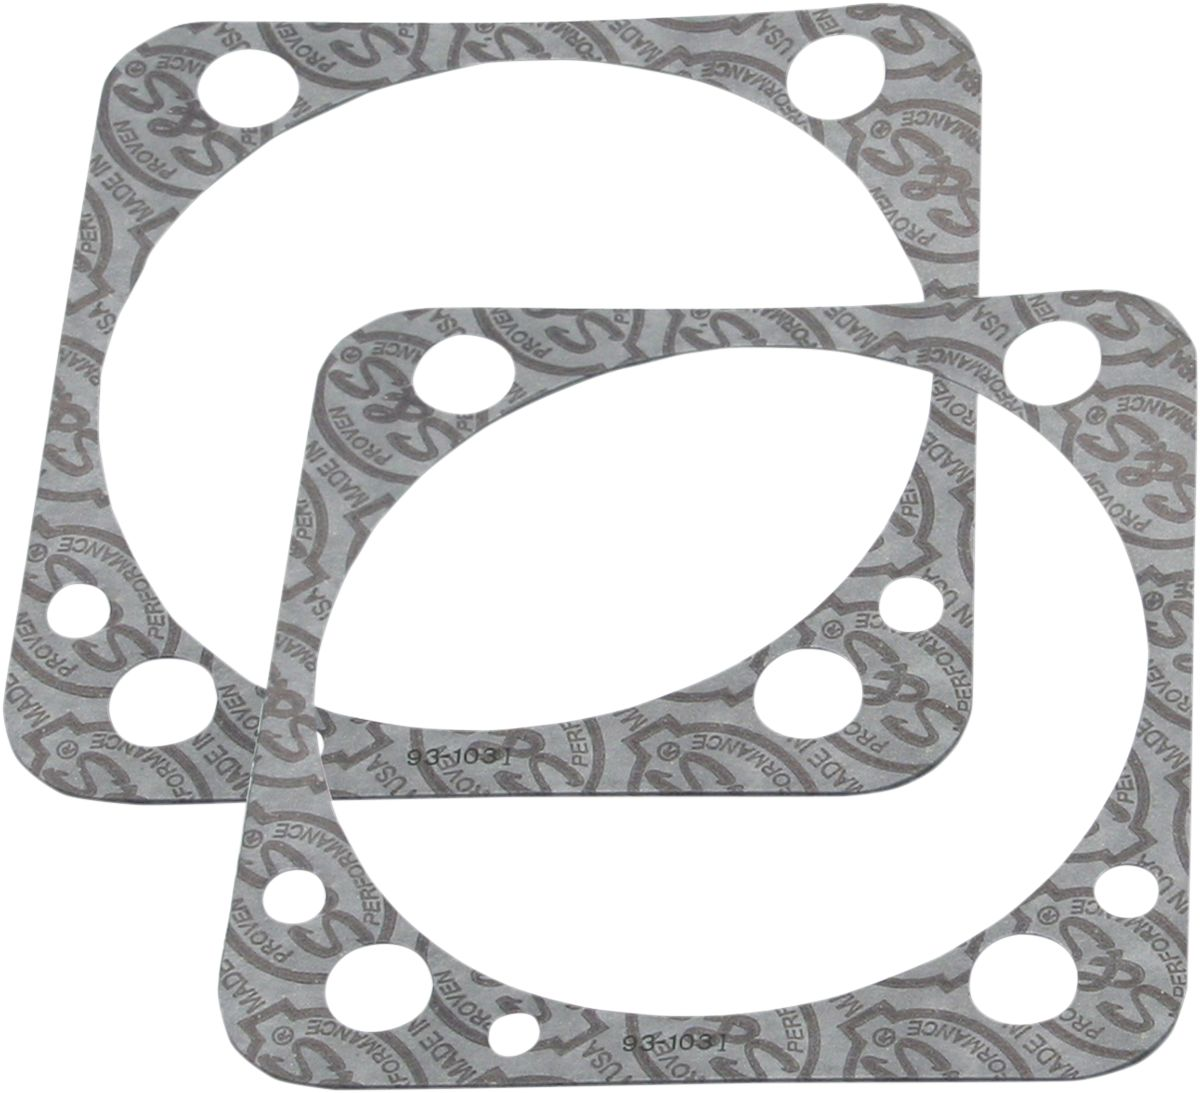 09345022 - S&S GASKETS BS 4